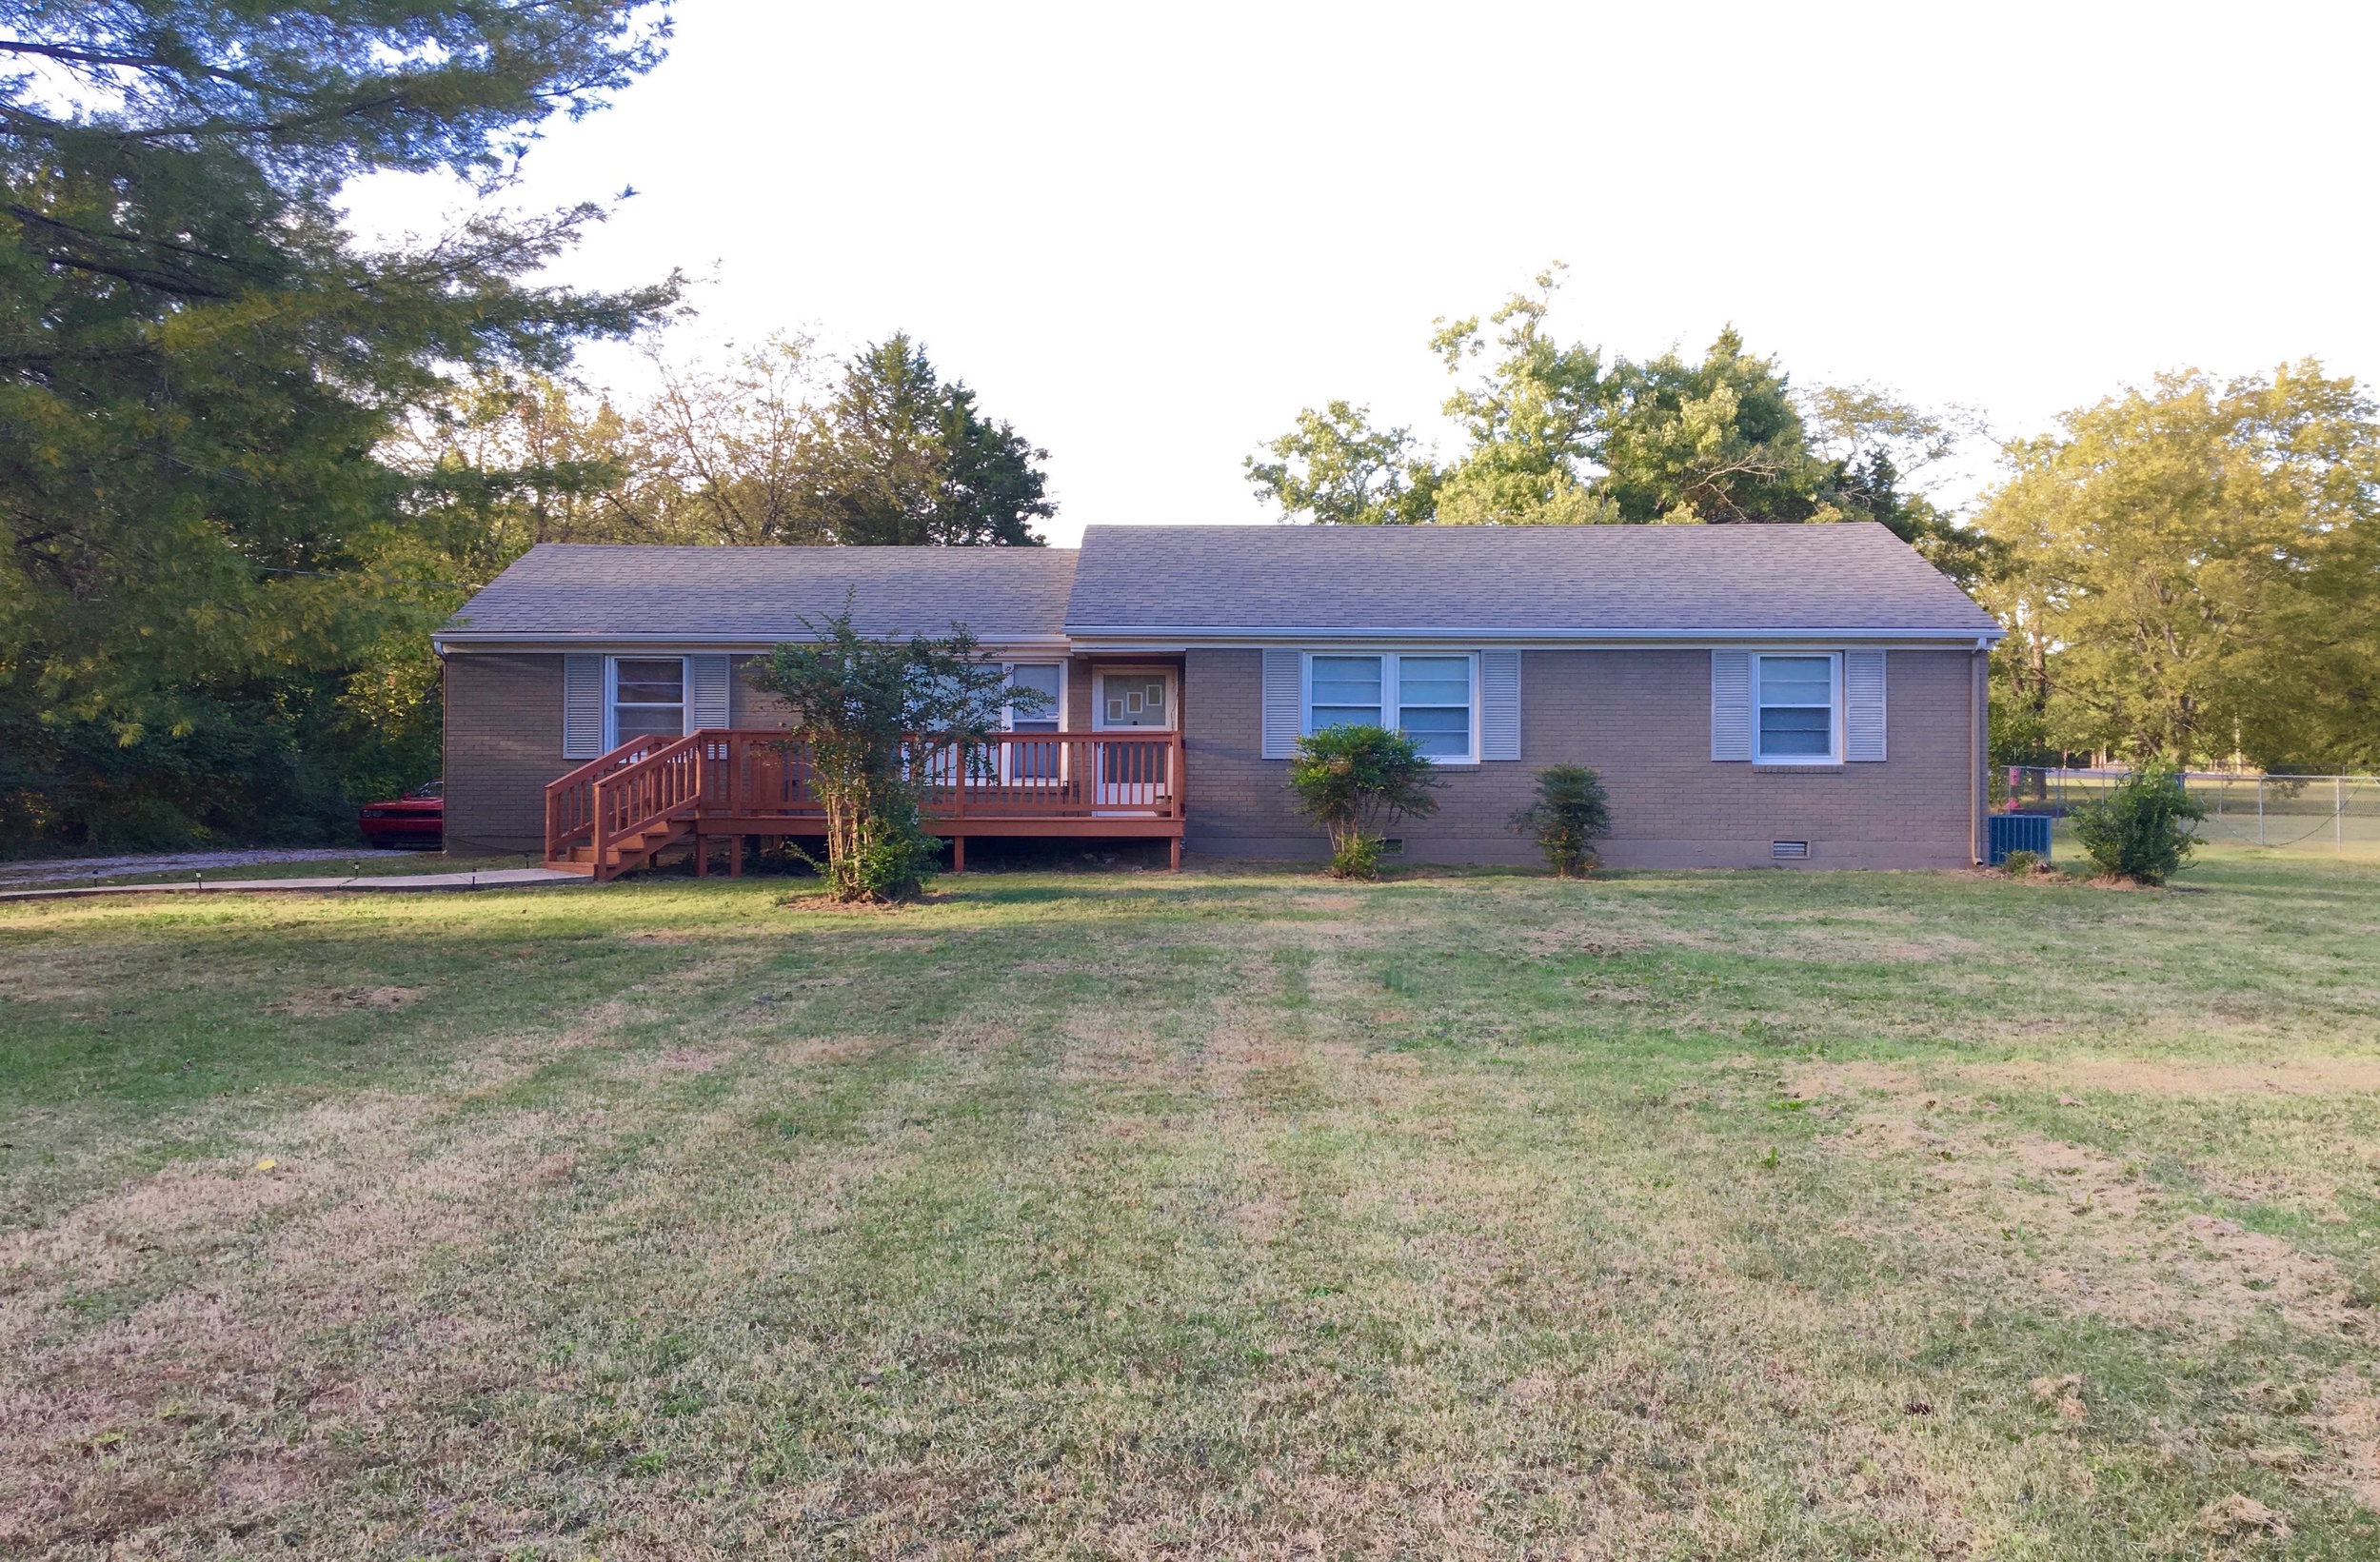 920 JUST RENTED MADSION: 920 Westchester: Home: 3 Br, 1 Ba